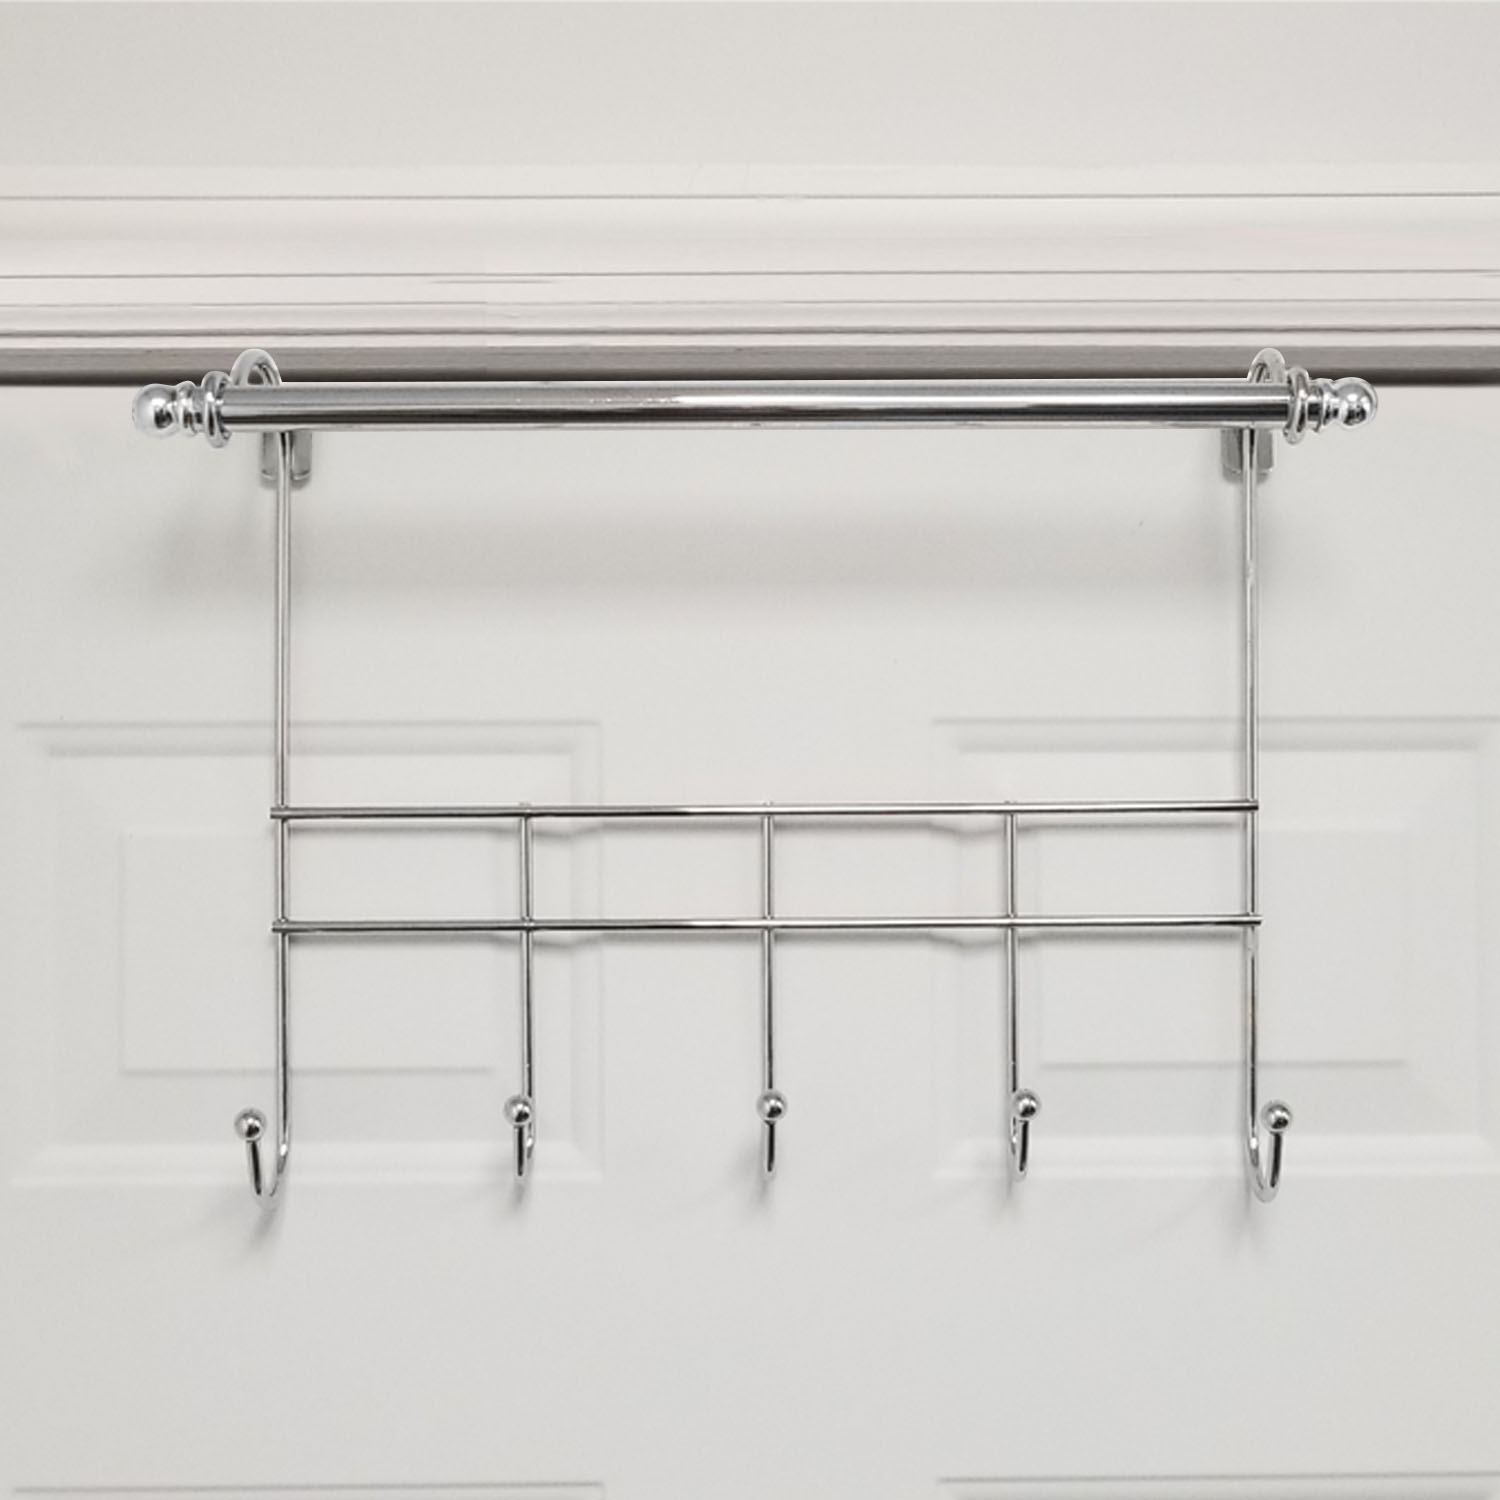 Towel Door Hanger Includes Rack Bar 5 Hooks No Embly Required 17 Inches Wide 2 Inch Over